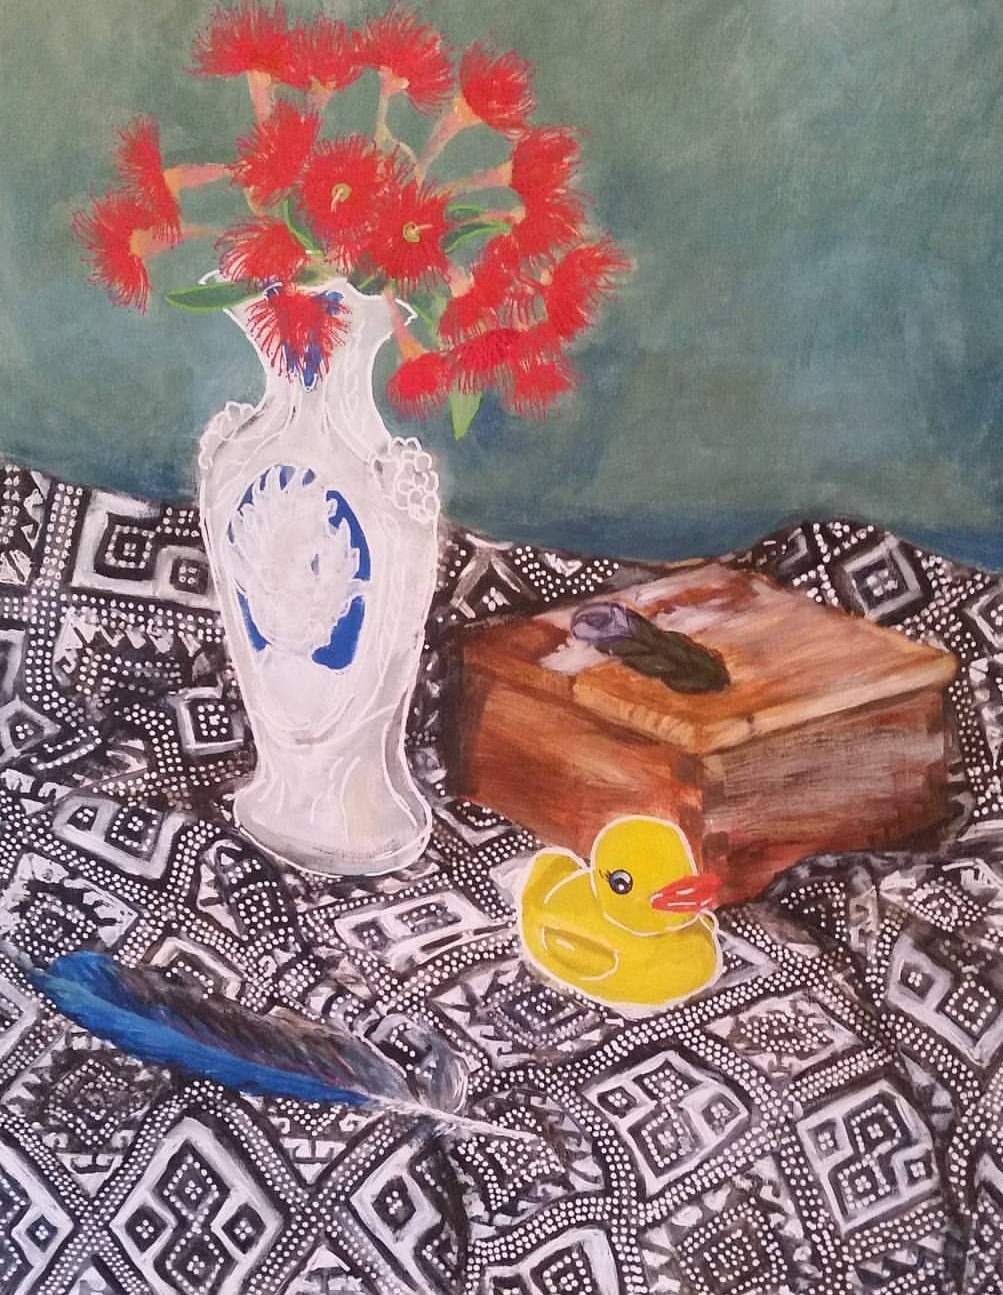 Still life with Duck  Acrylic on linen panel  24 x 18 inches  Available